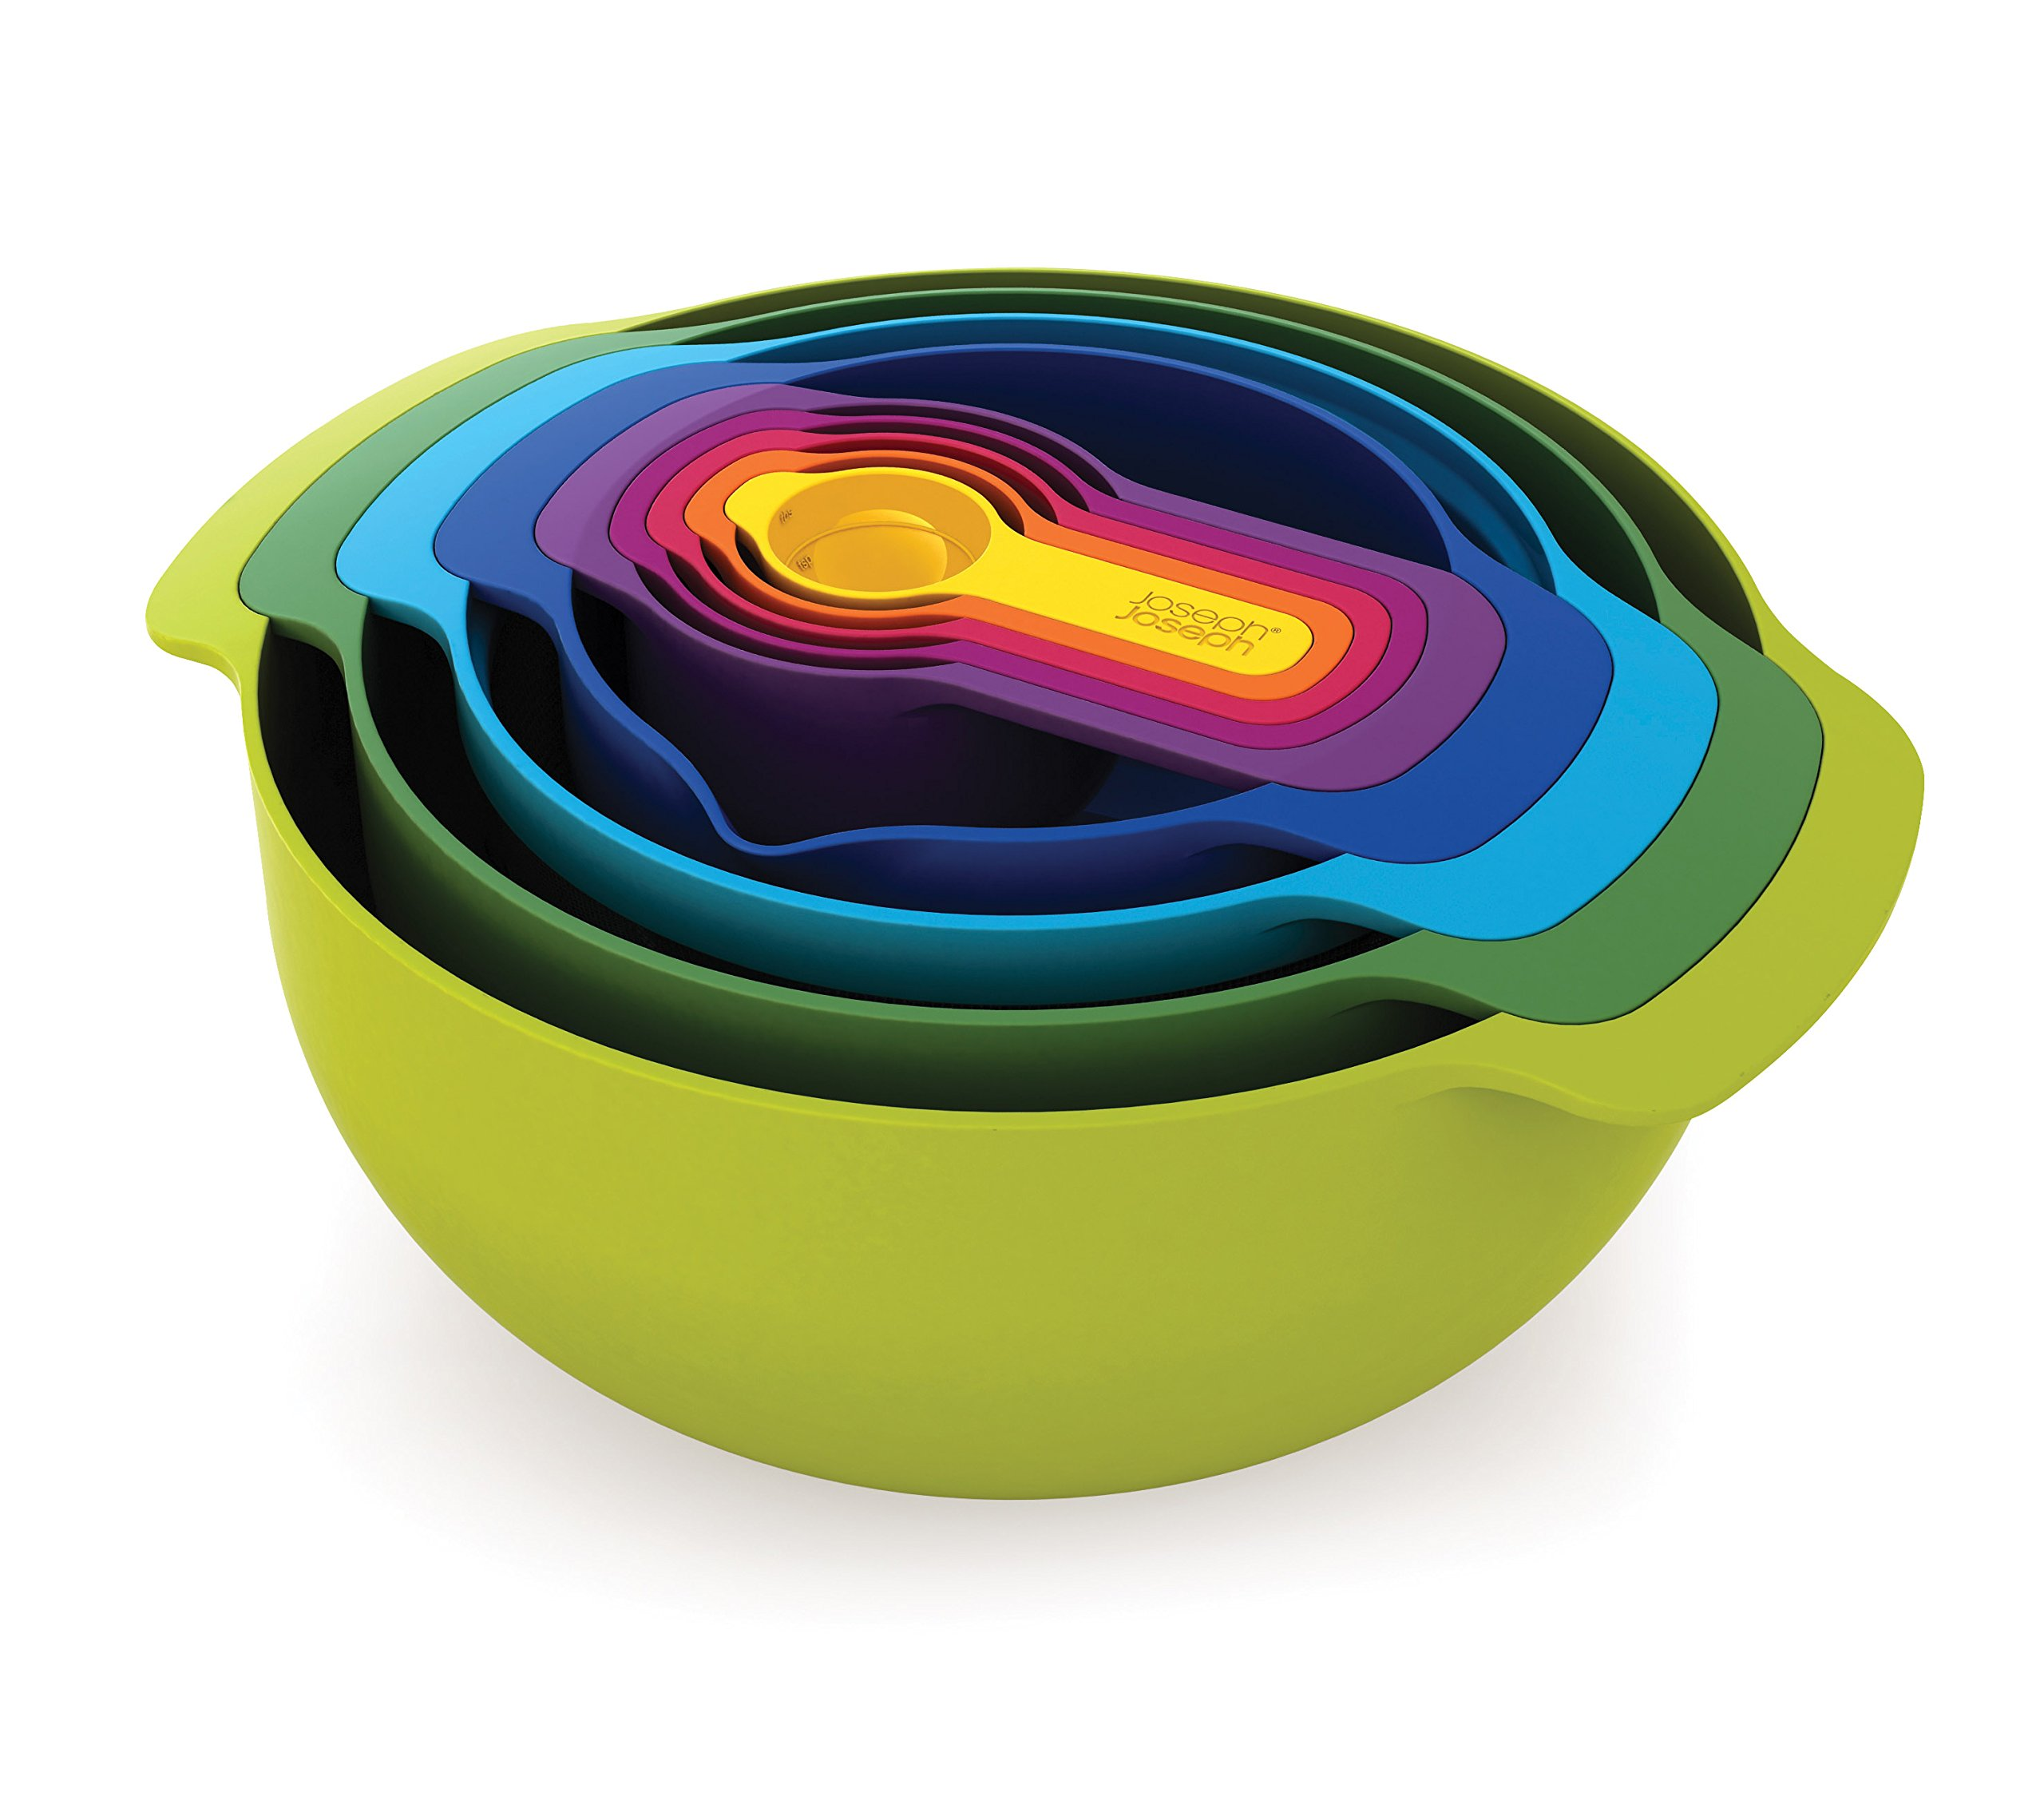 Joseph Joseph 40031 Nest 9 Nesting Bowls Set with Mixing Bowls Measuring Cups Sieve Colander, 9-Piece, Multicolored